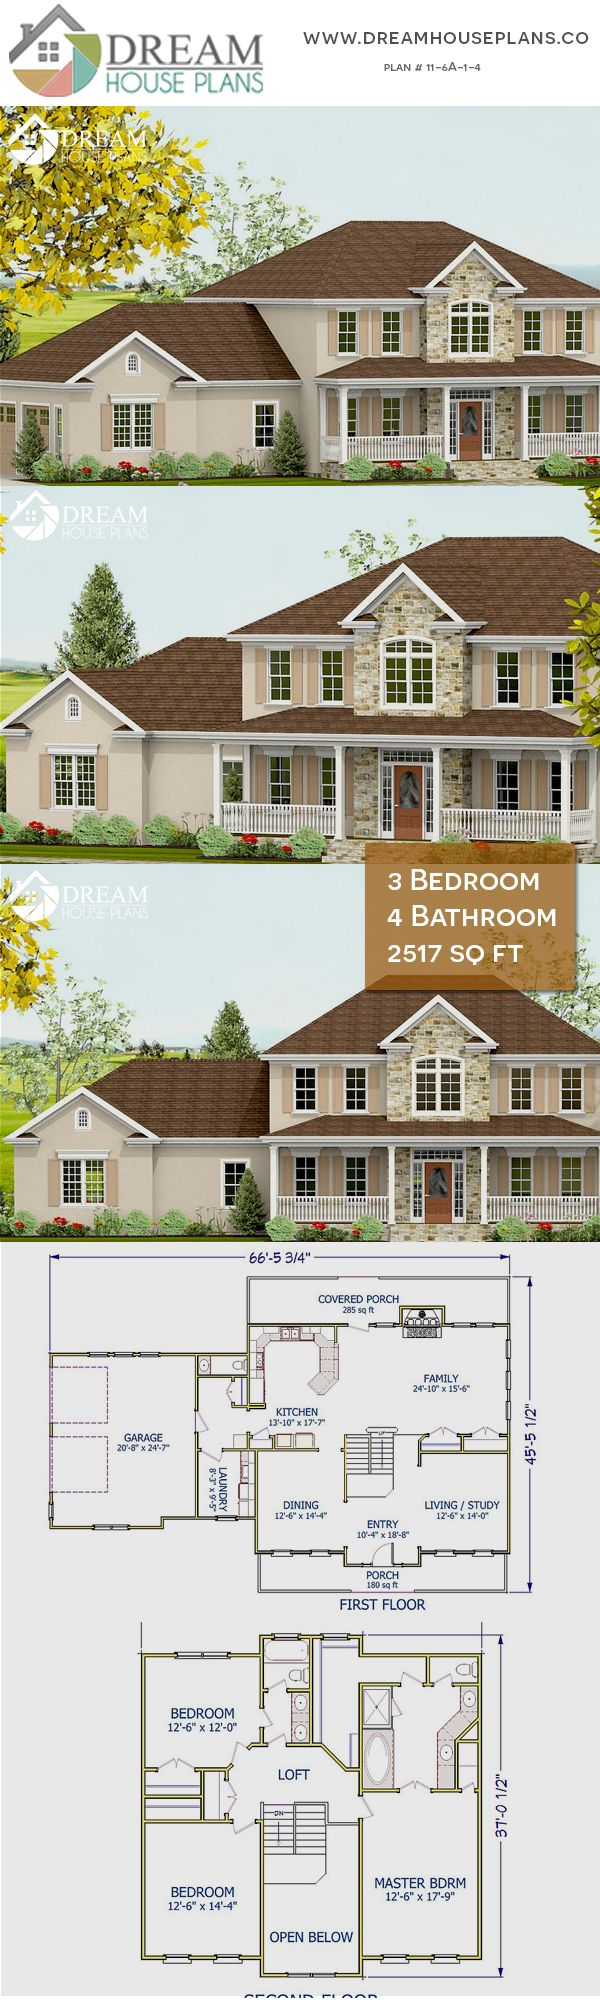 Dream house plans popular colonial bedroom sq ft house